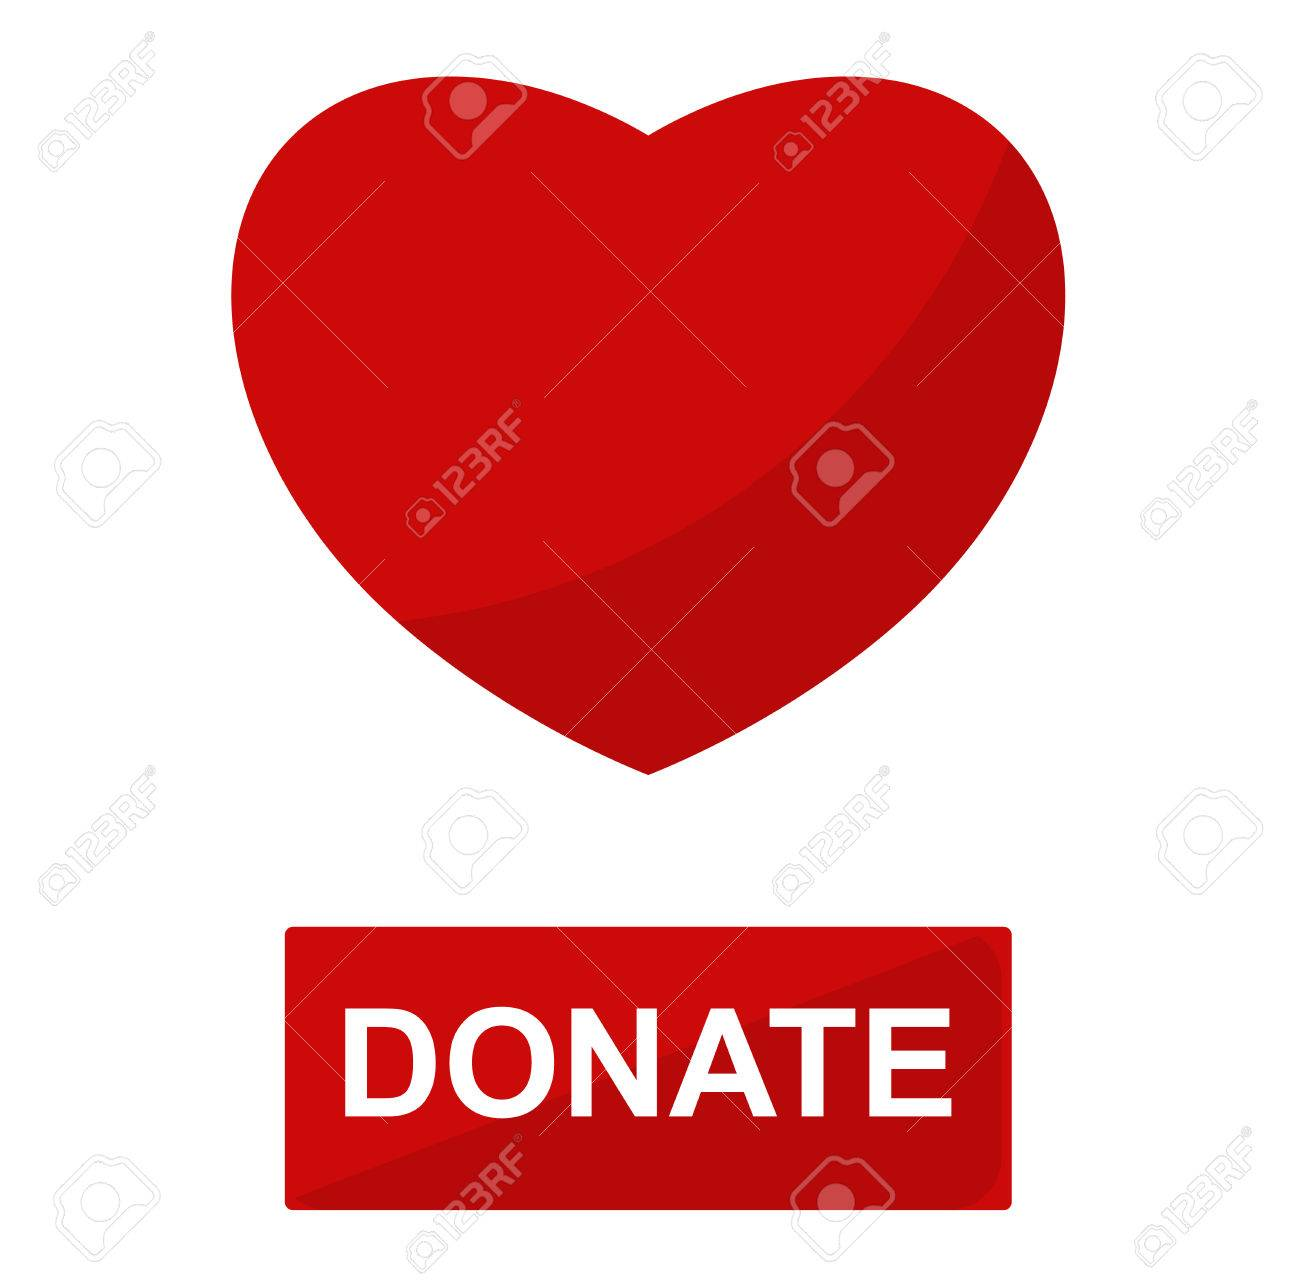 Simple Donate Red Heart Button Vector Icon Color Card Beautiful